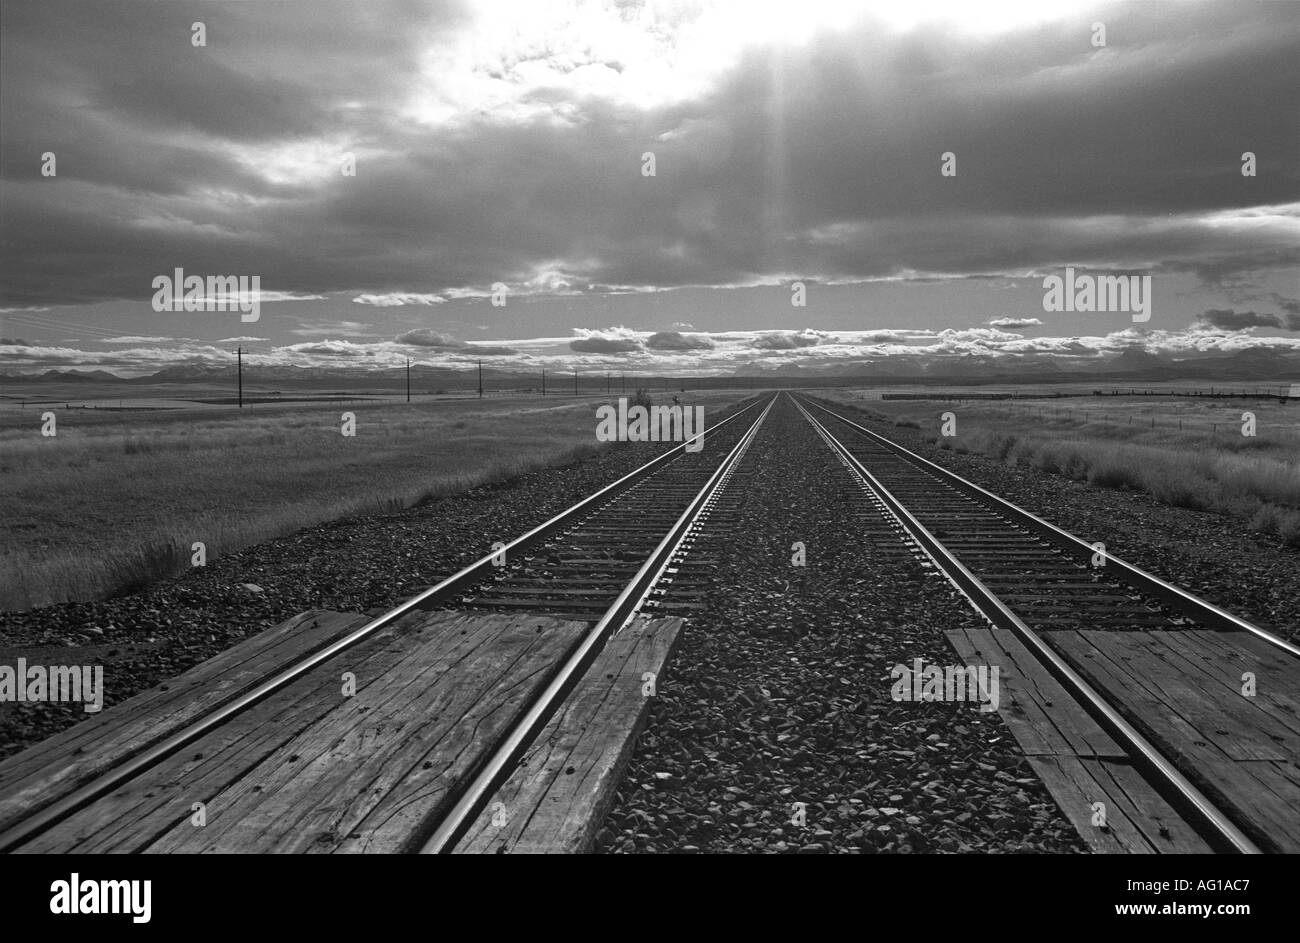 Railroad tracks disappear into the sunset in northern Montana, USA - Stock Image